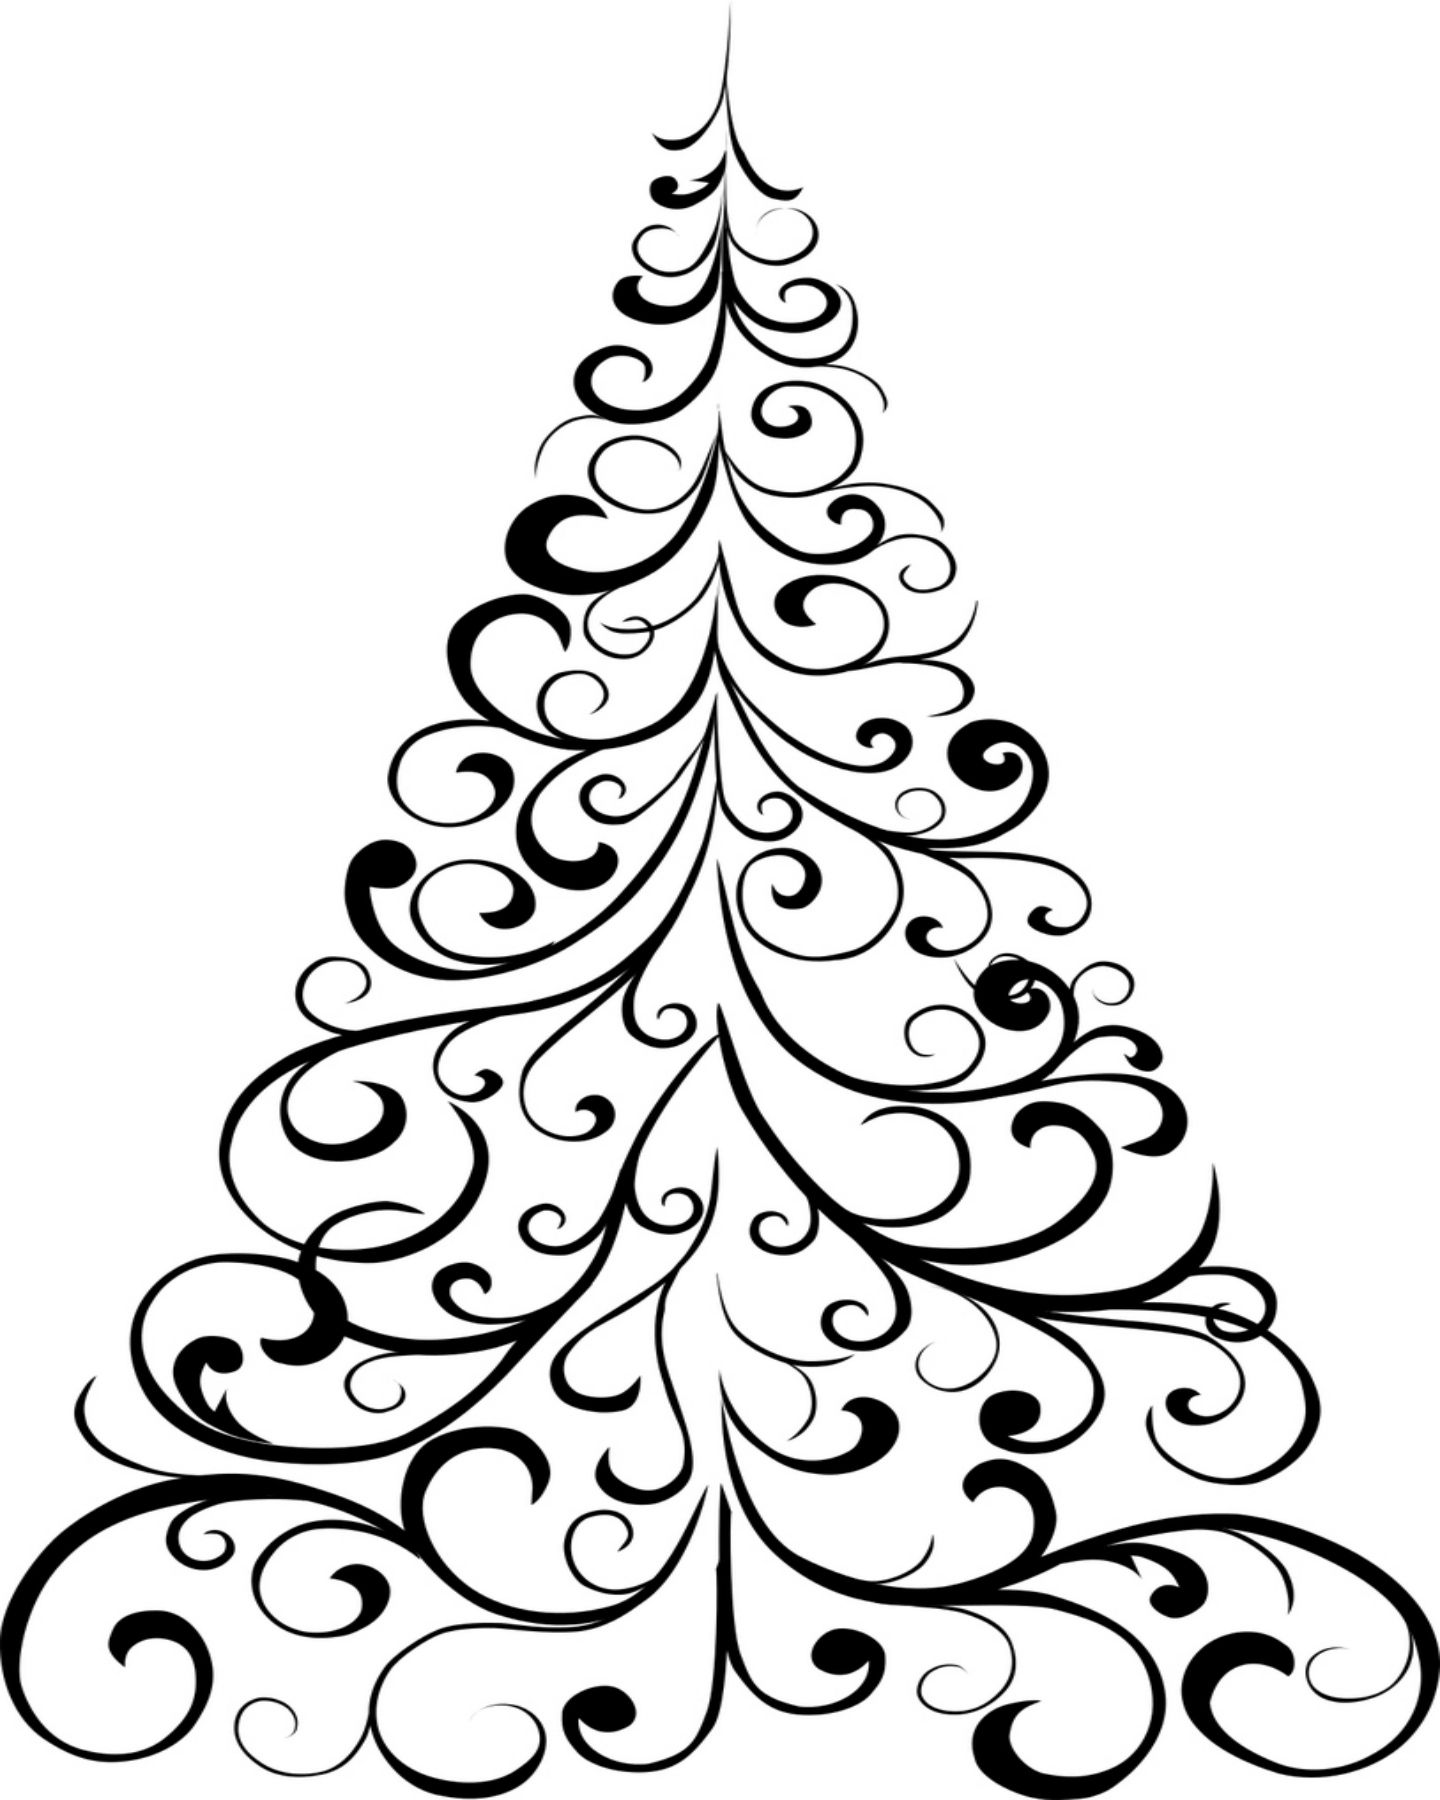 Free Printable Christmas Tree Coloring Page | Holly Jolly X-Mas ...